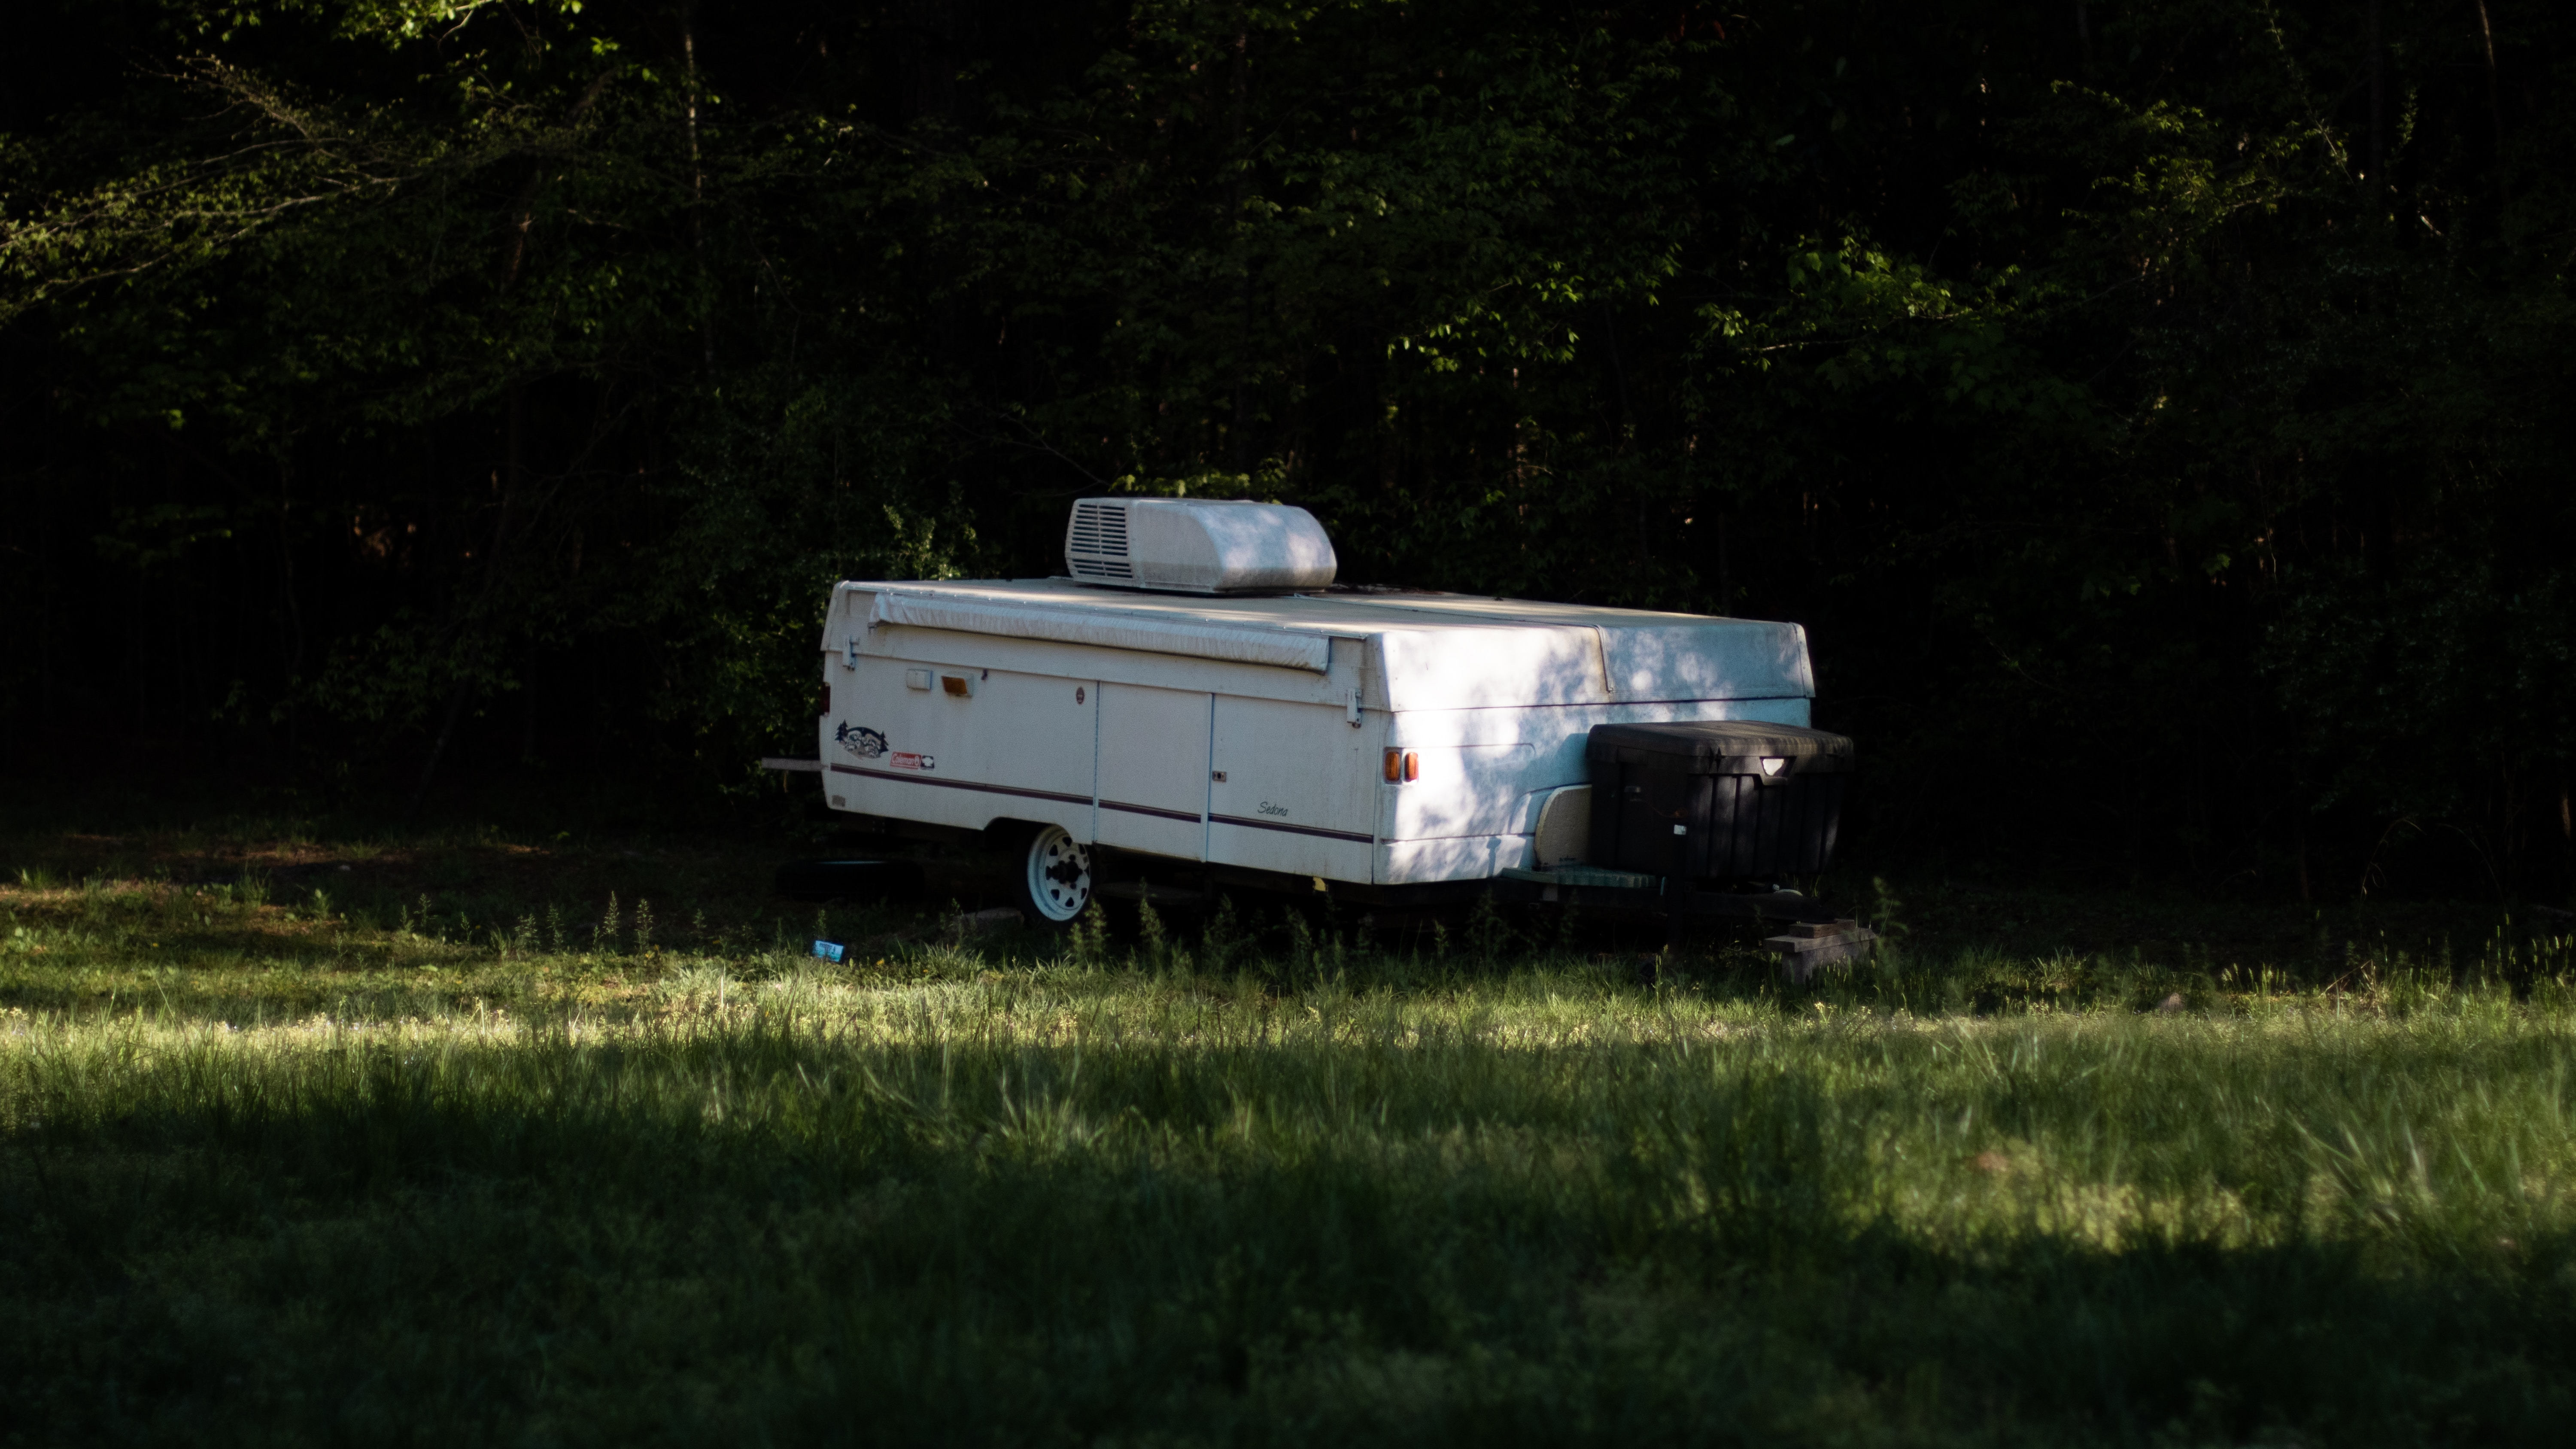 Pop Up Camper Parked In A Field.